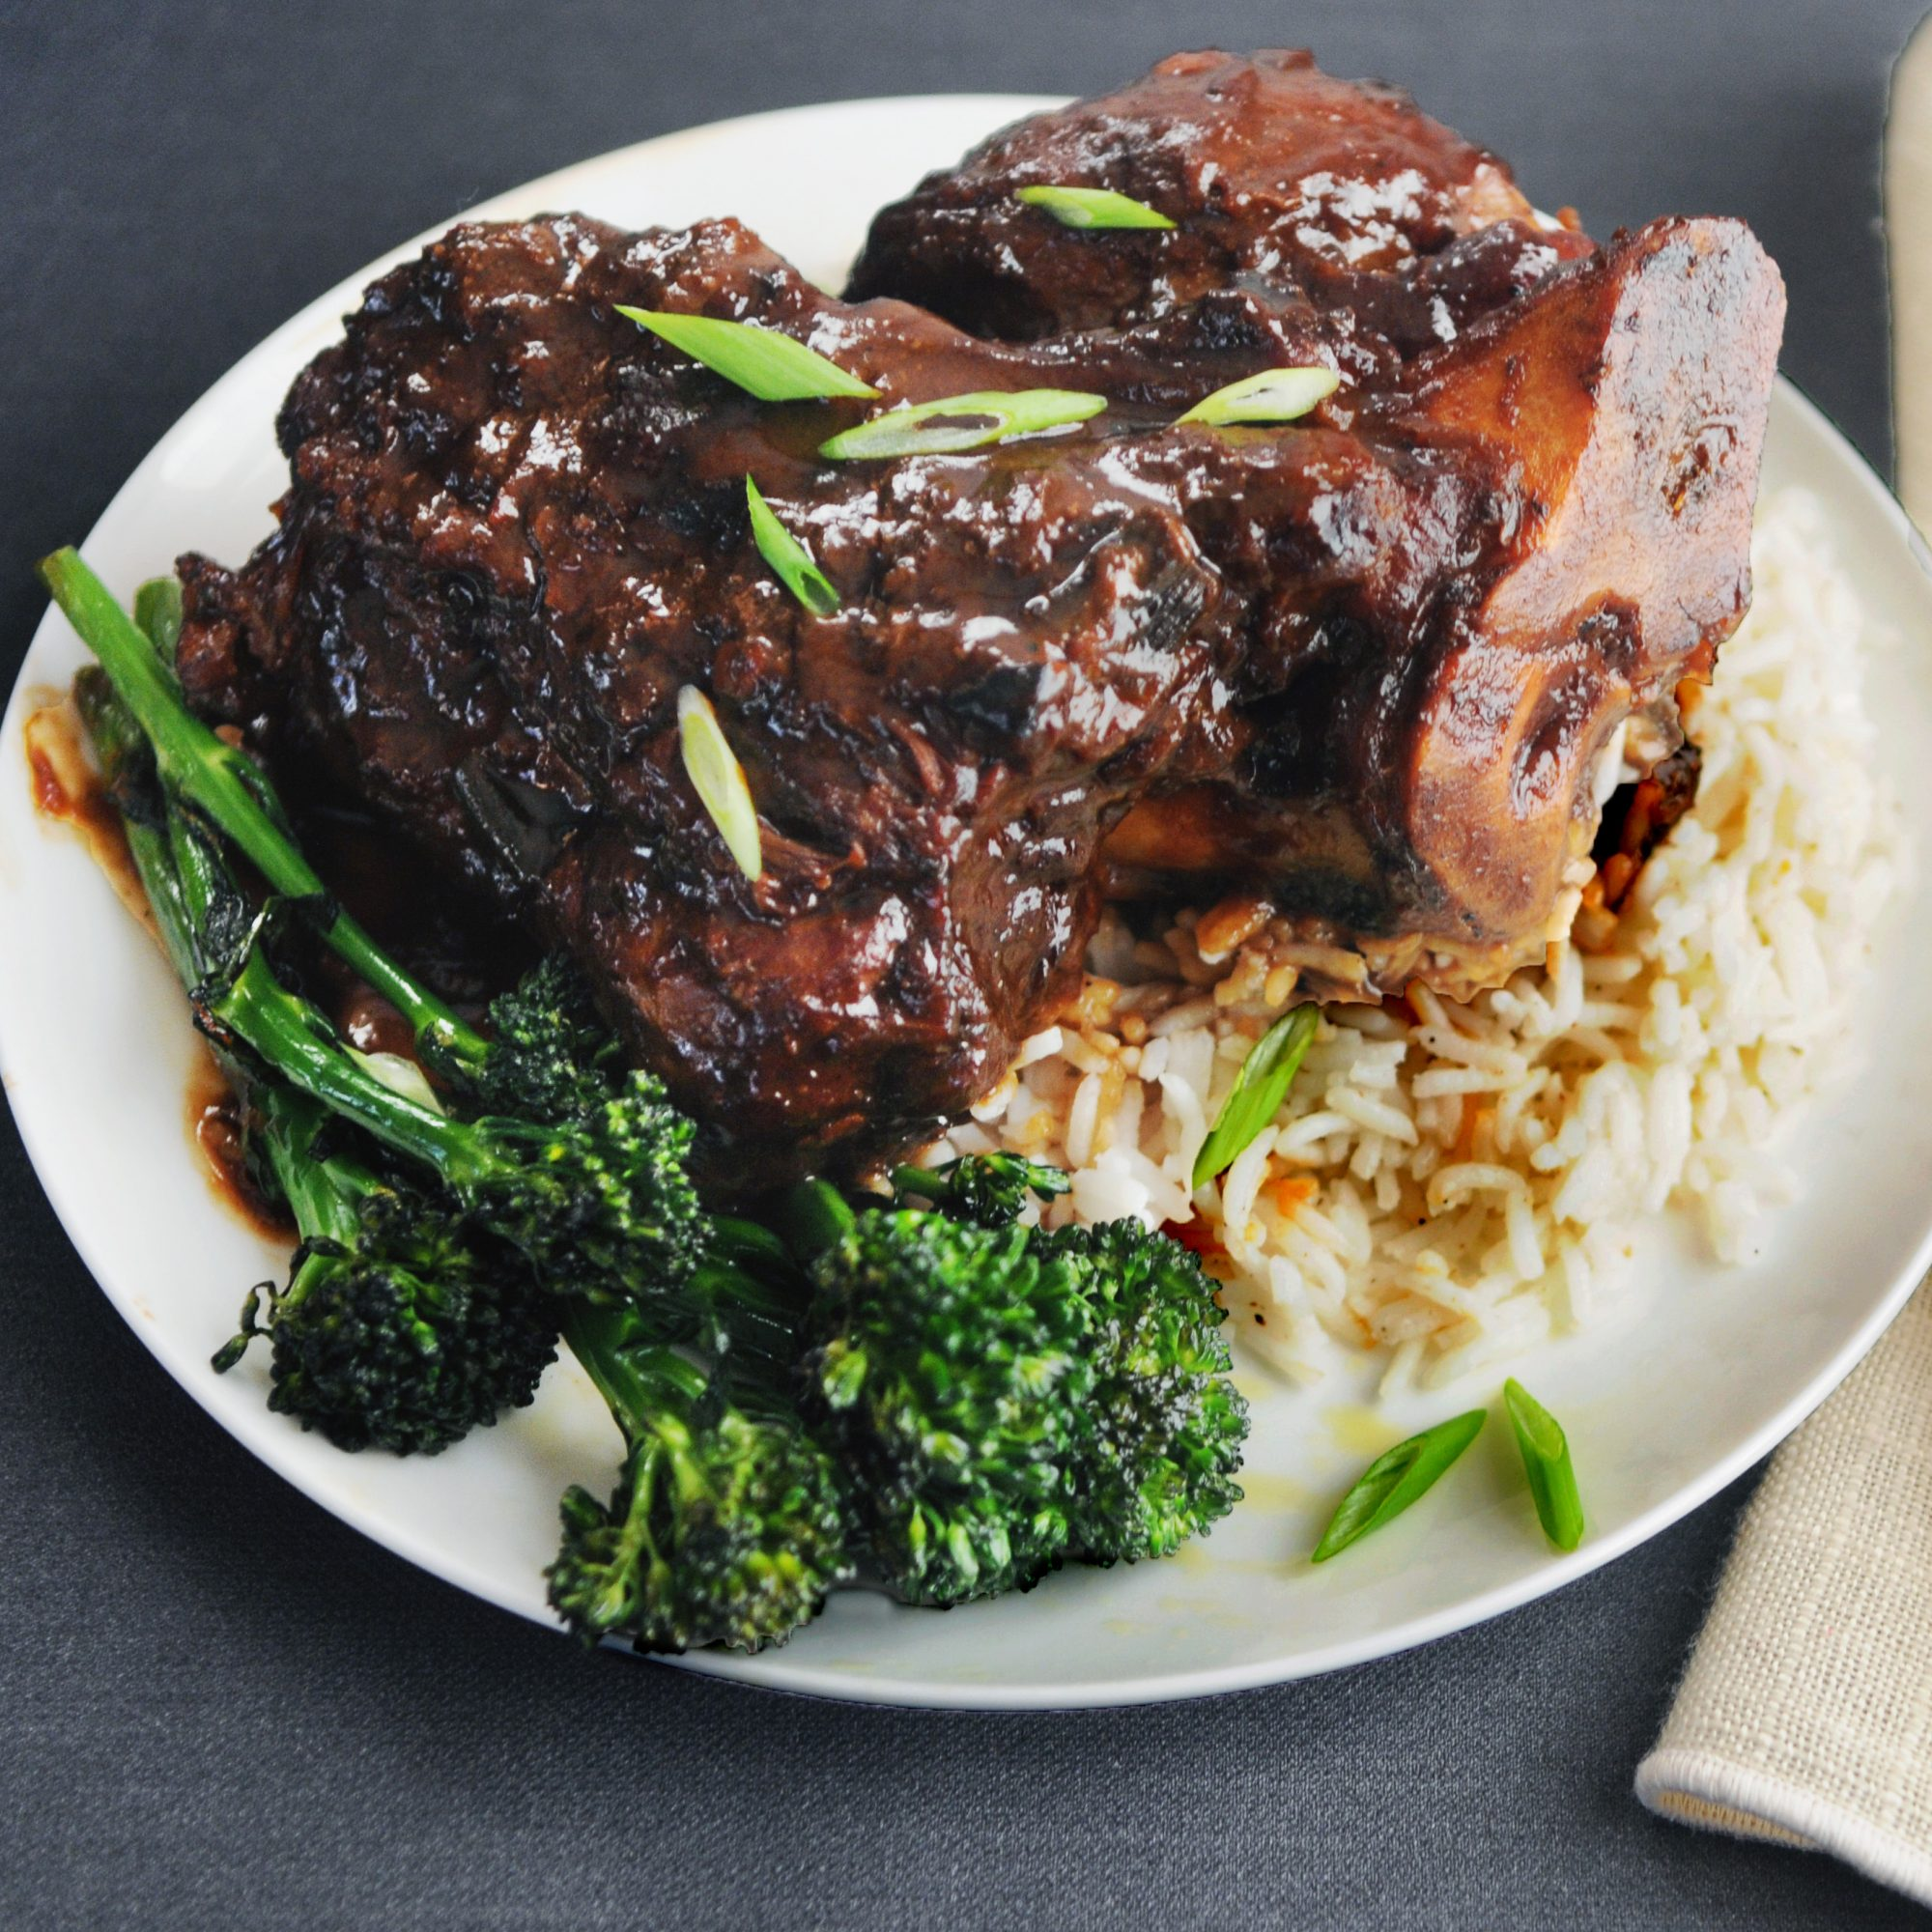 Braised Pork Shank with Miso